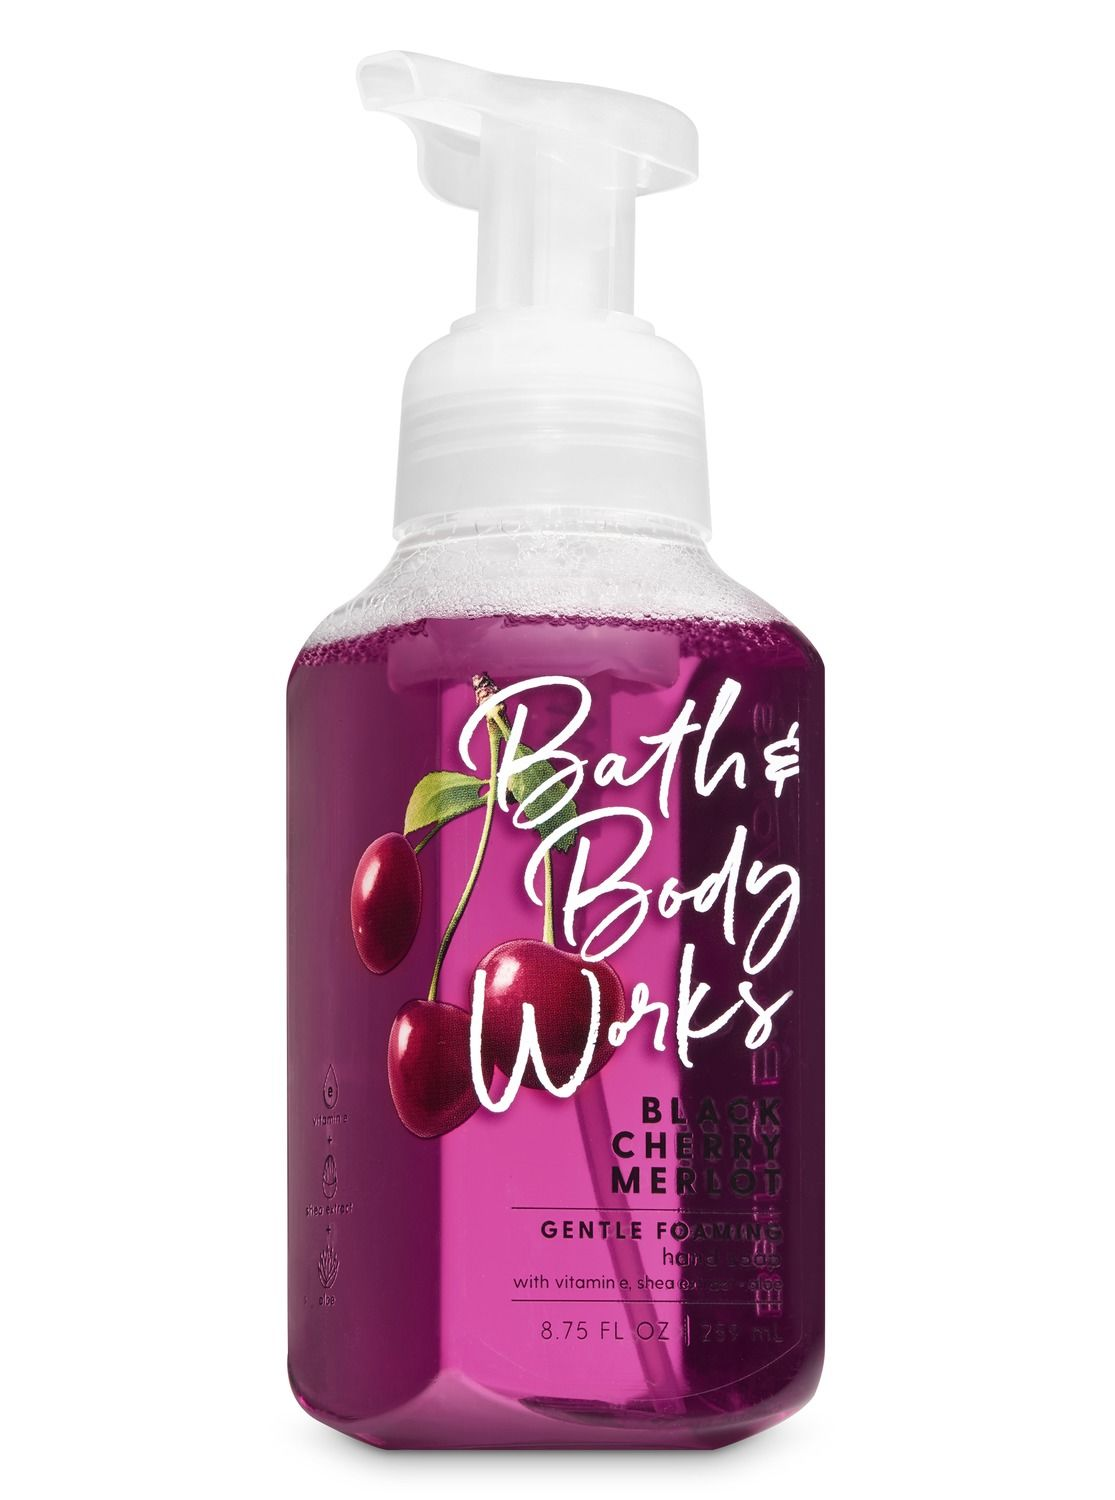 Black Cherry Merlot Gentle Foaming Hand Soap By Bath Body Works